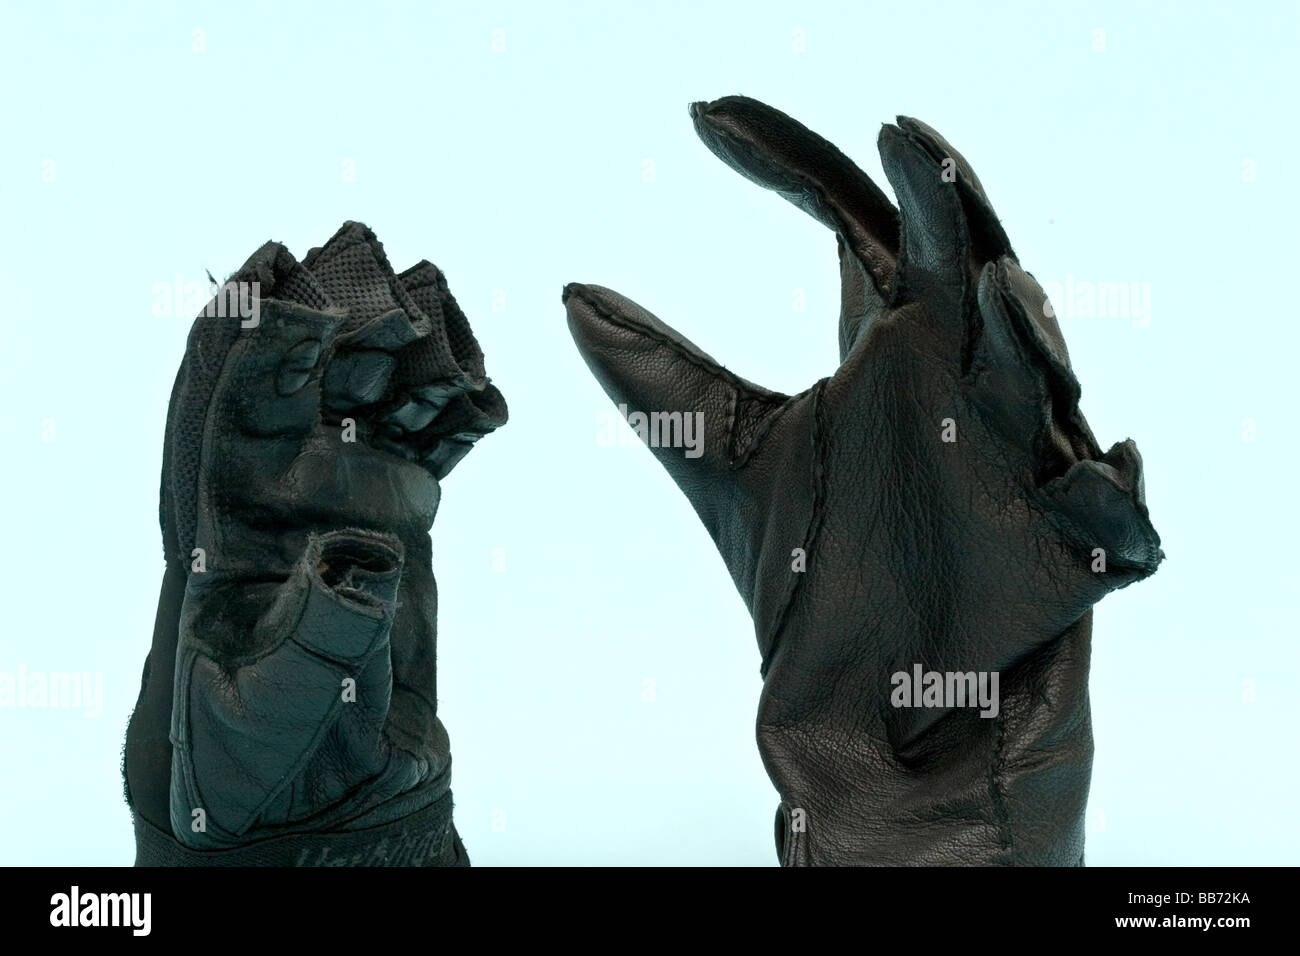 Two gloves, one expensive leather, and another a exercise glove - Stock Image